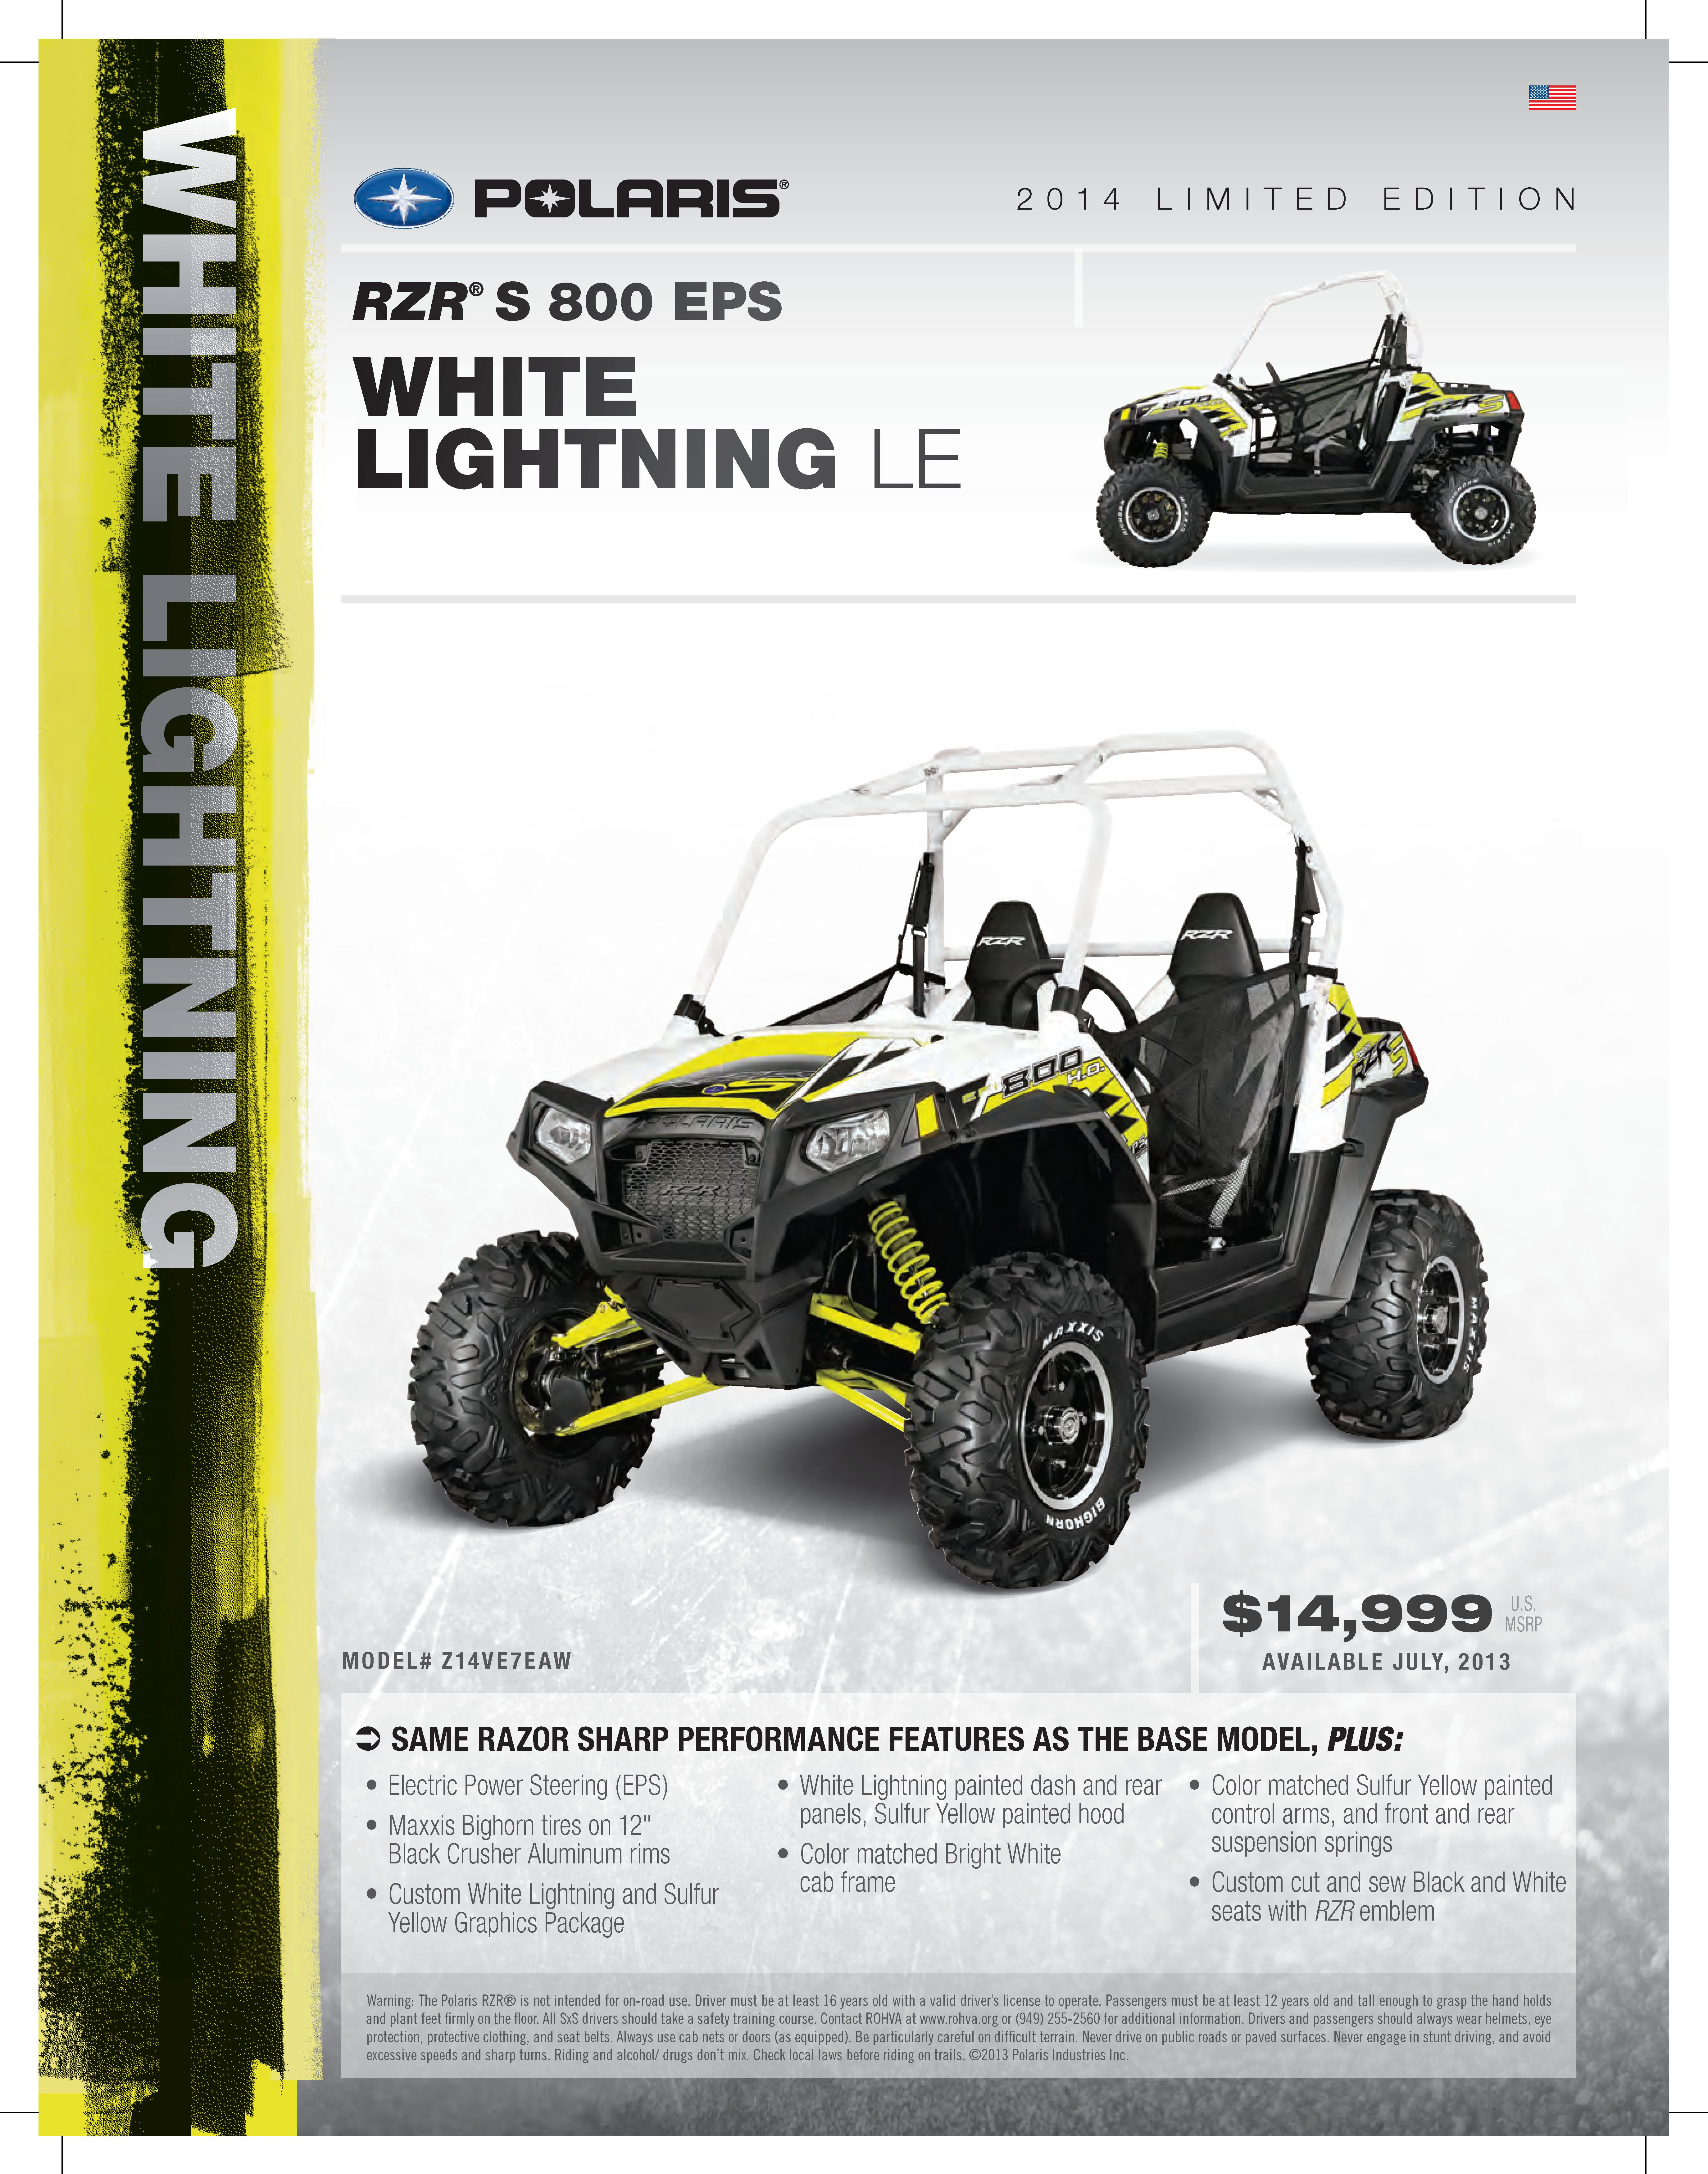 2014 polaris rzr s 800 eps in white lightning woodscyclecountry